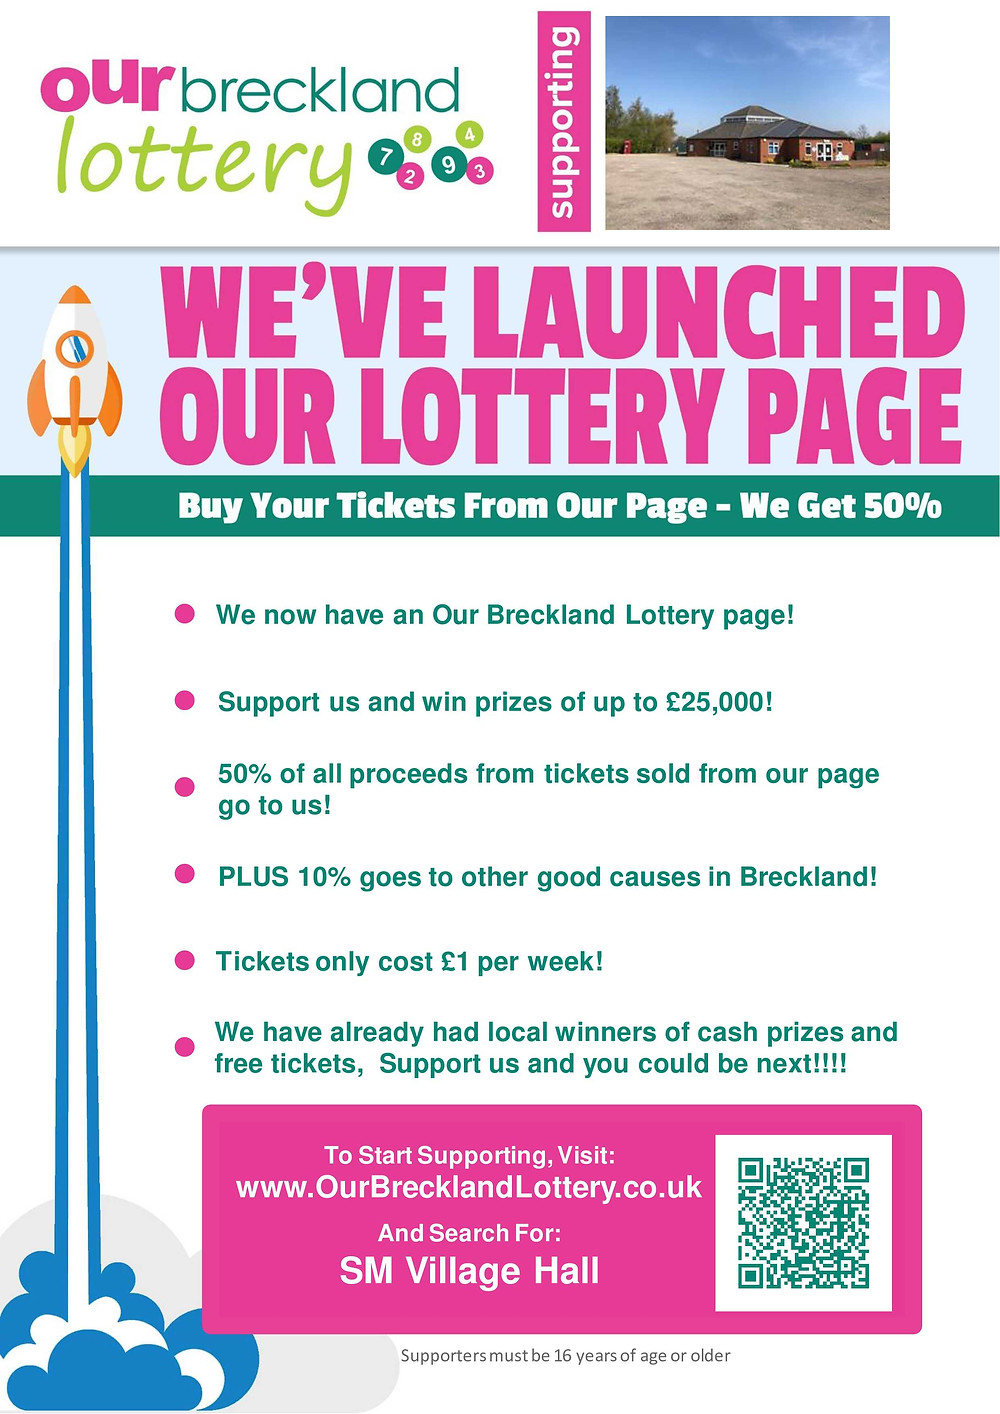 Lottery launch poster for Swanton Morley Village Hall